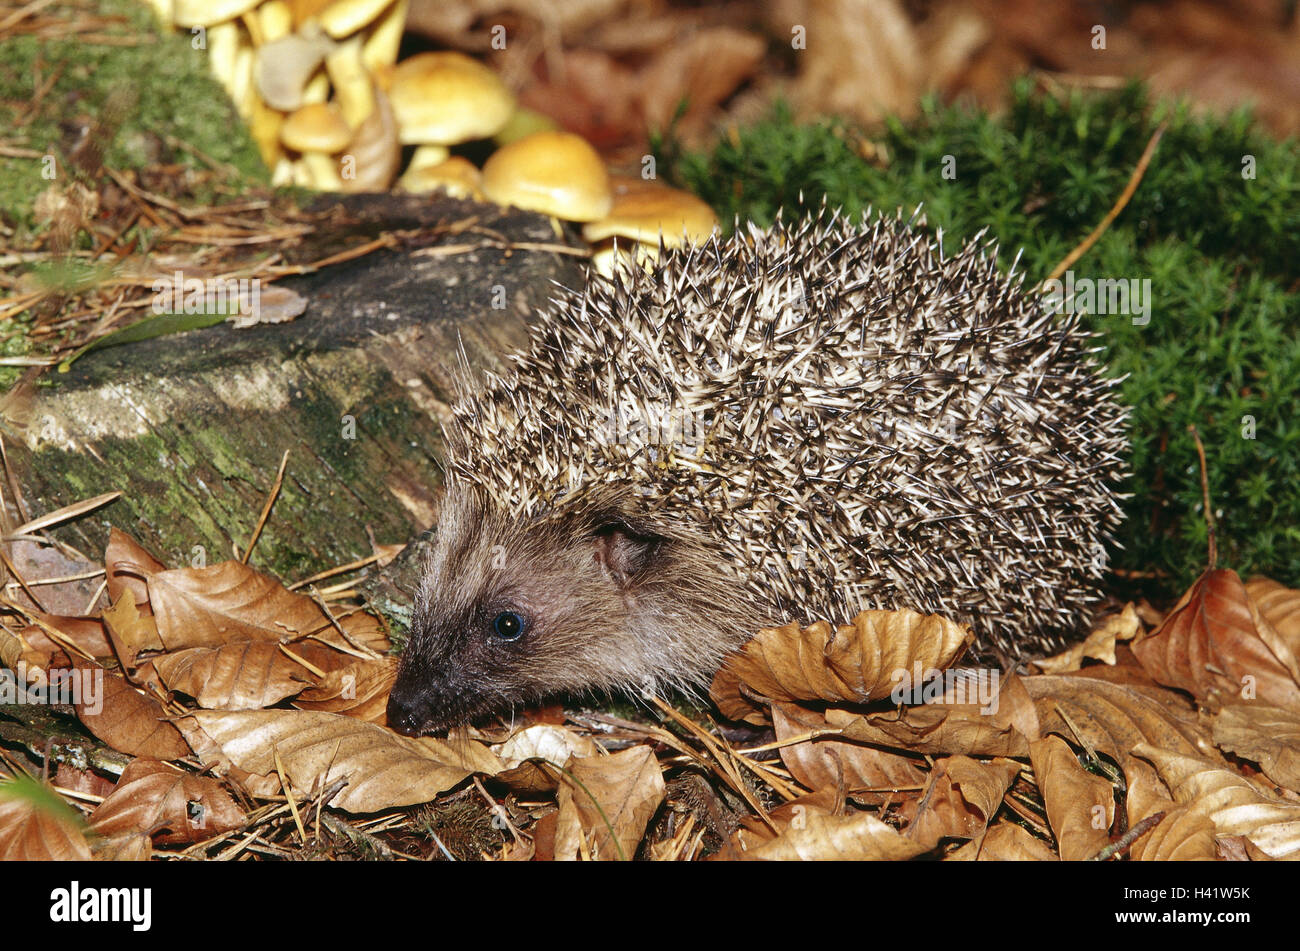 Forest floor, European hedgehog, young animal, Erinaceus europaeus, lining search animals, animal, mammals, mammal, - Stock Image